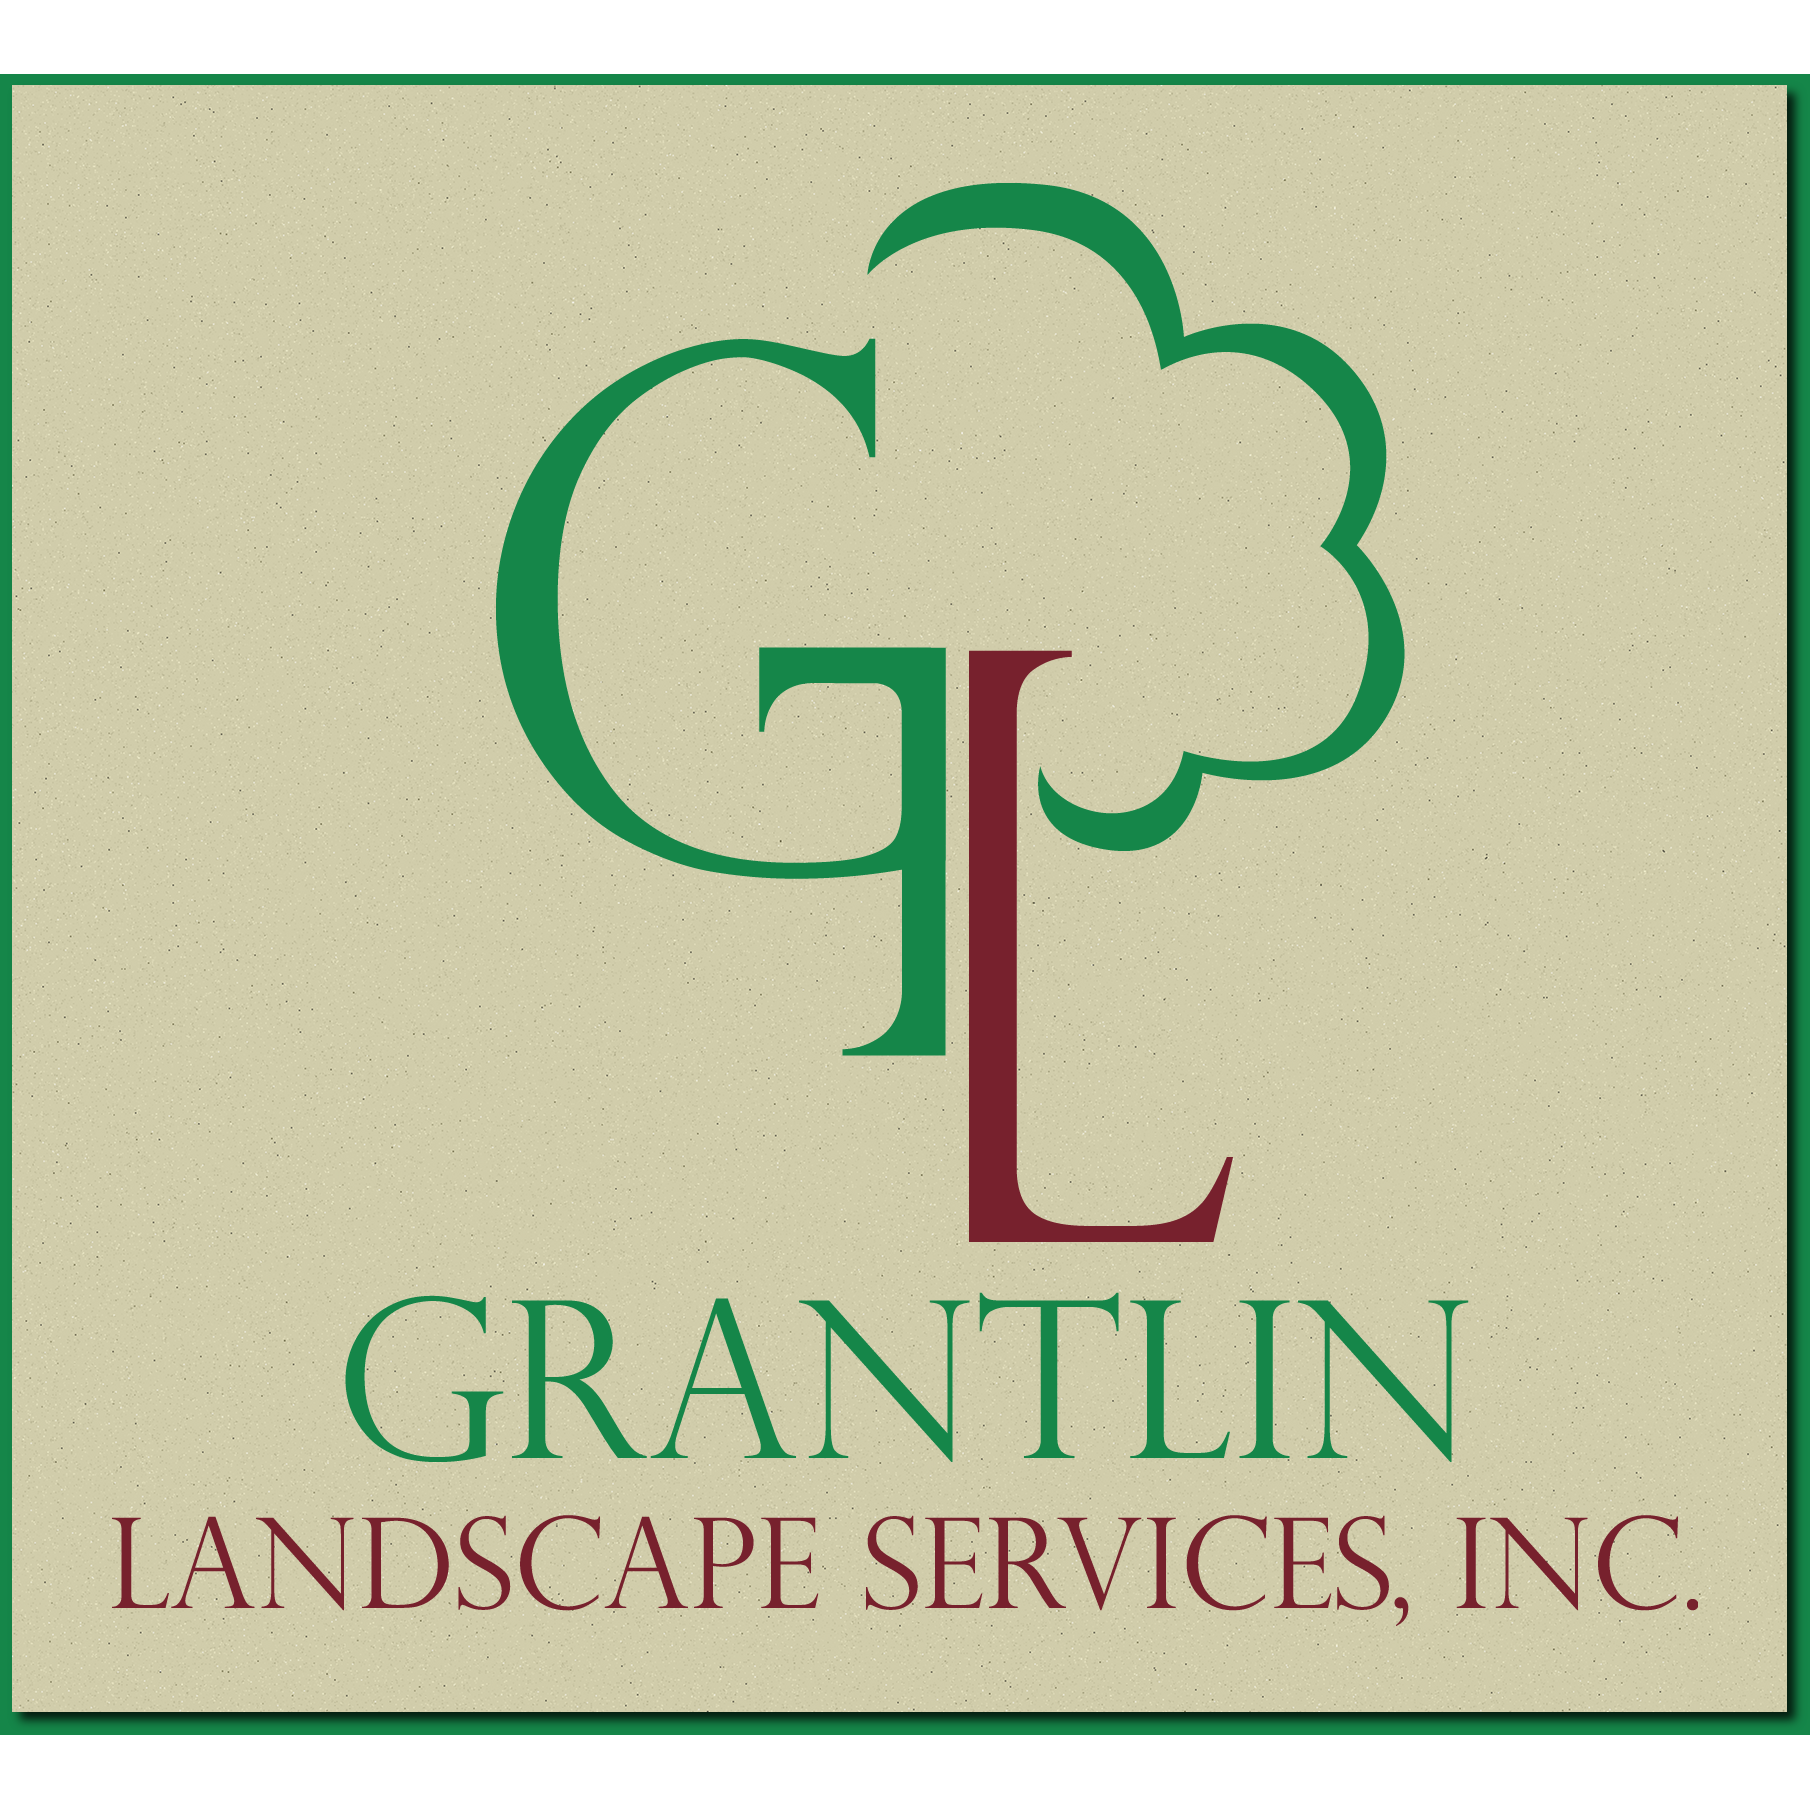 Grantlin Landscape Services, Inc.